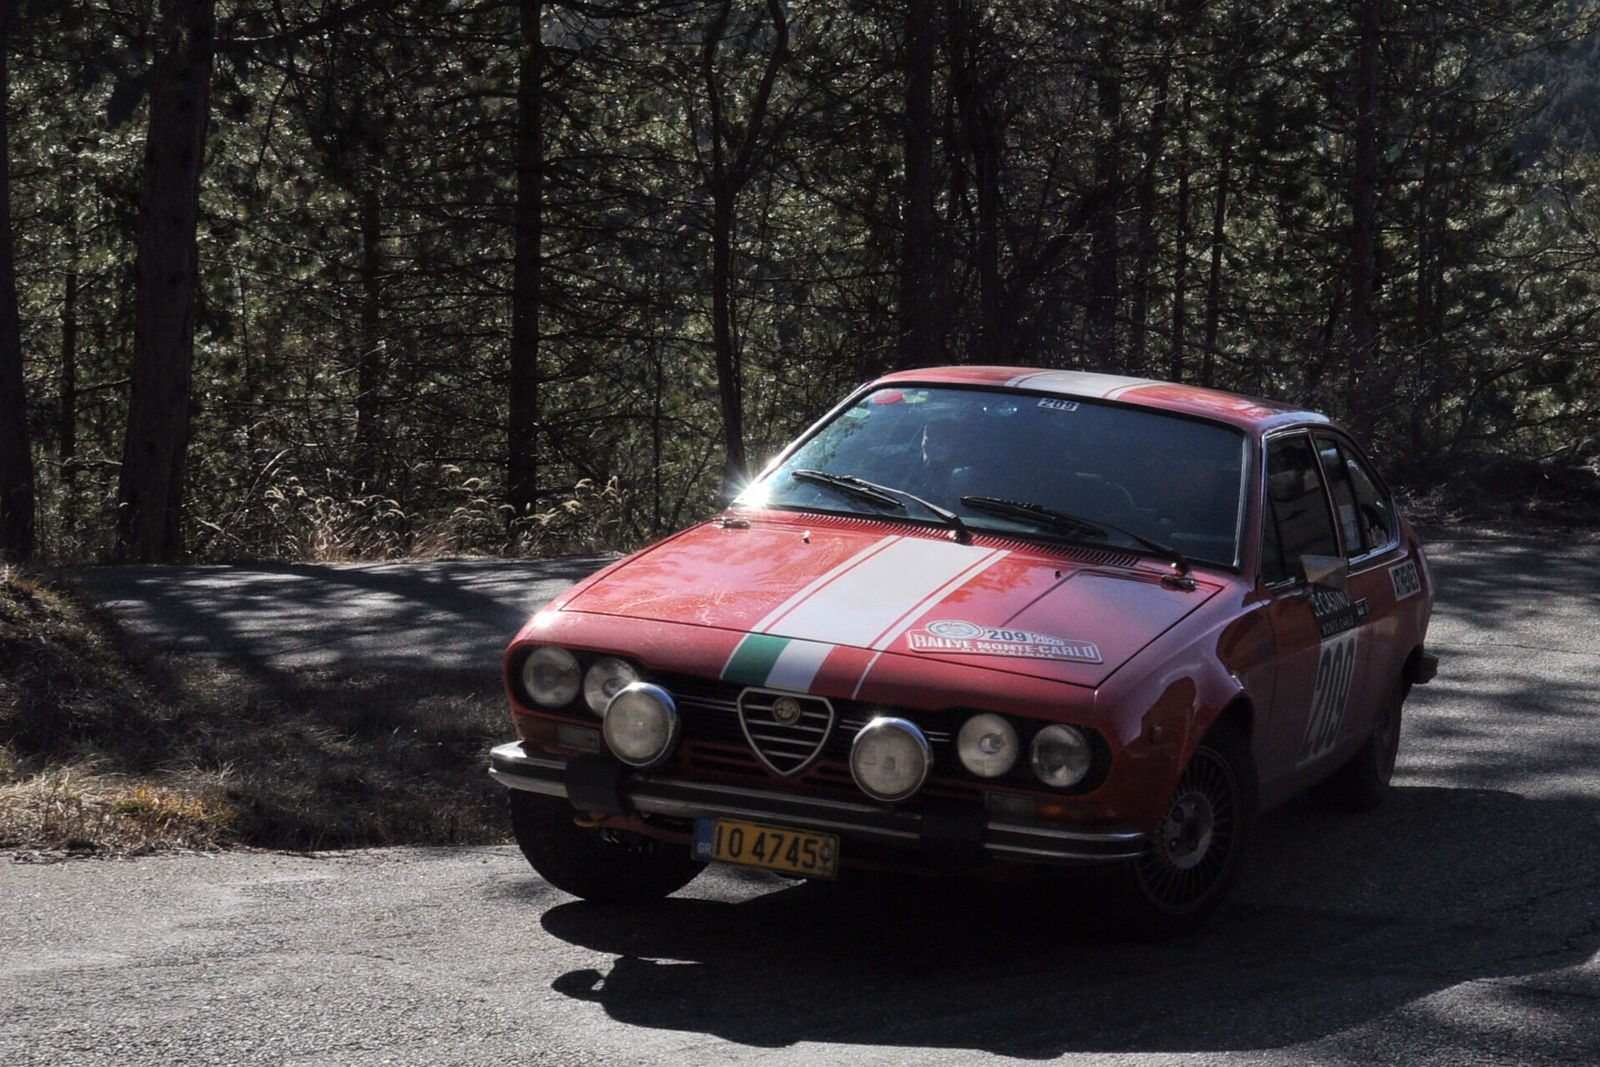 Alfa Romeo Alfetta GTV 2,0 1976 ..... Photo : R.S.